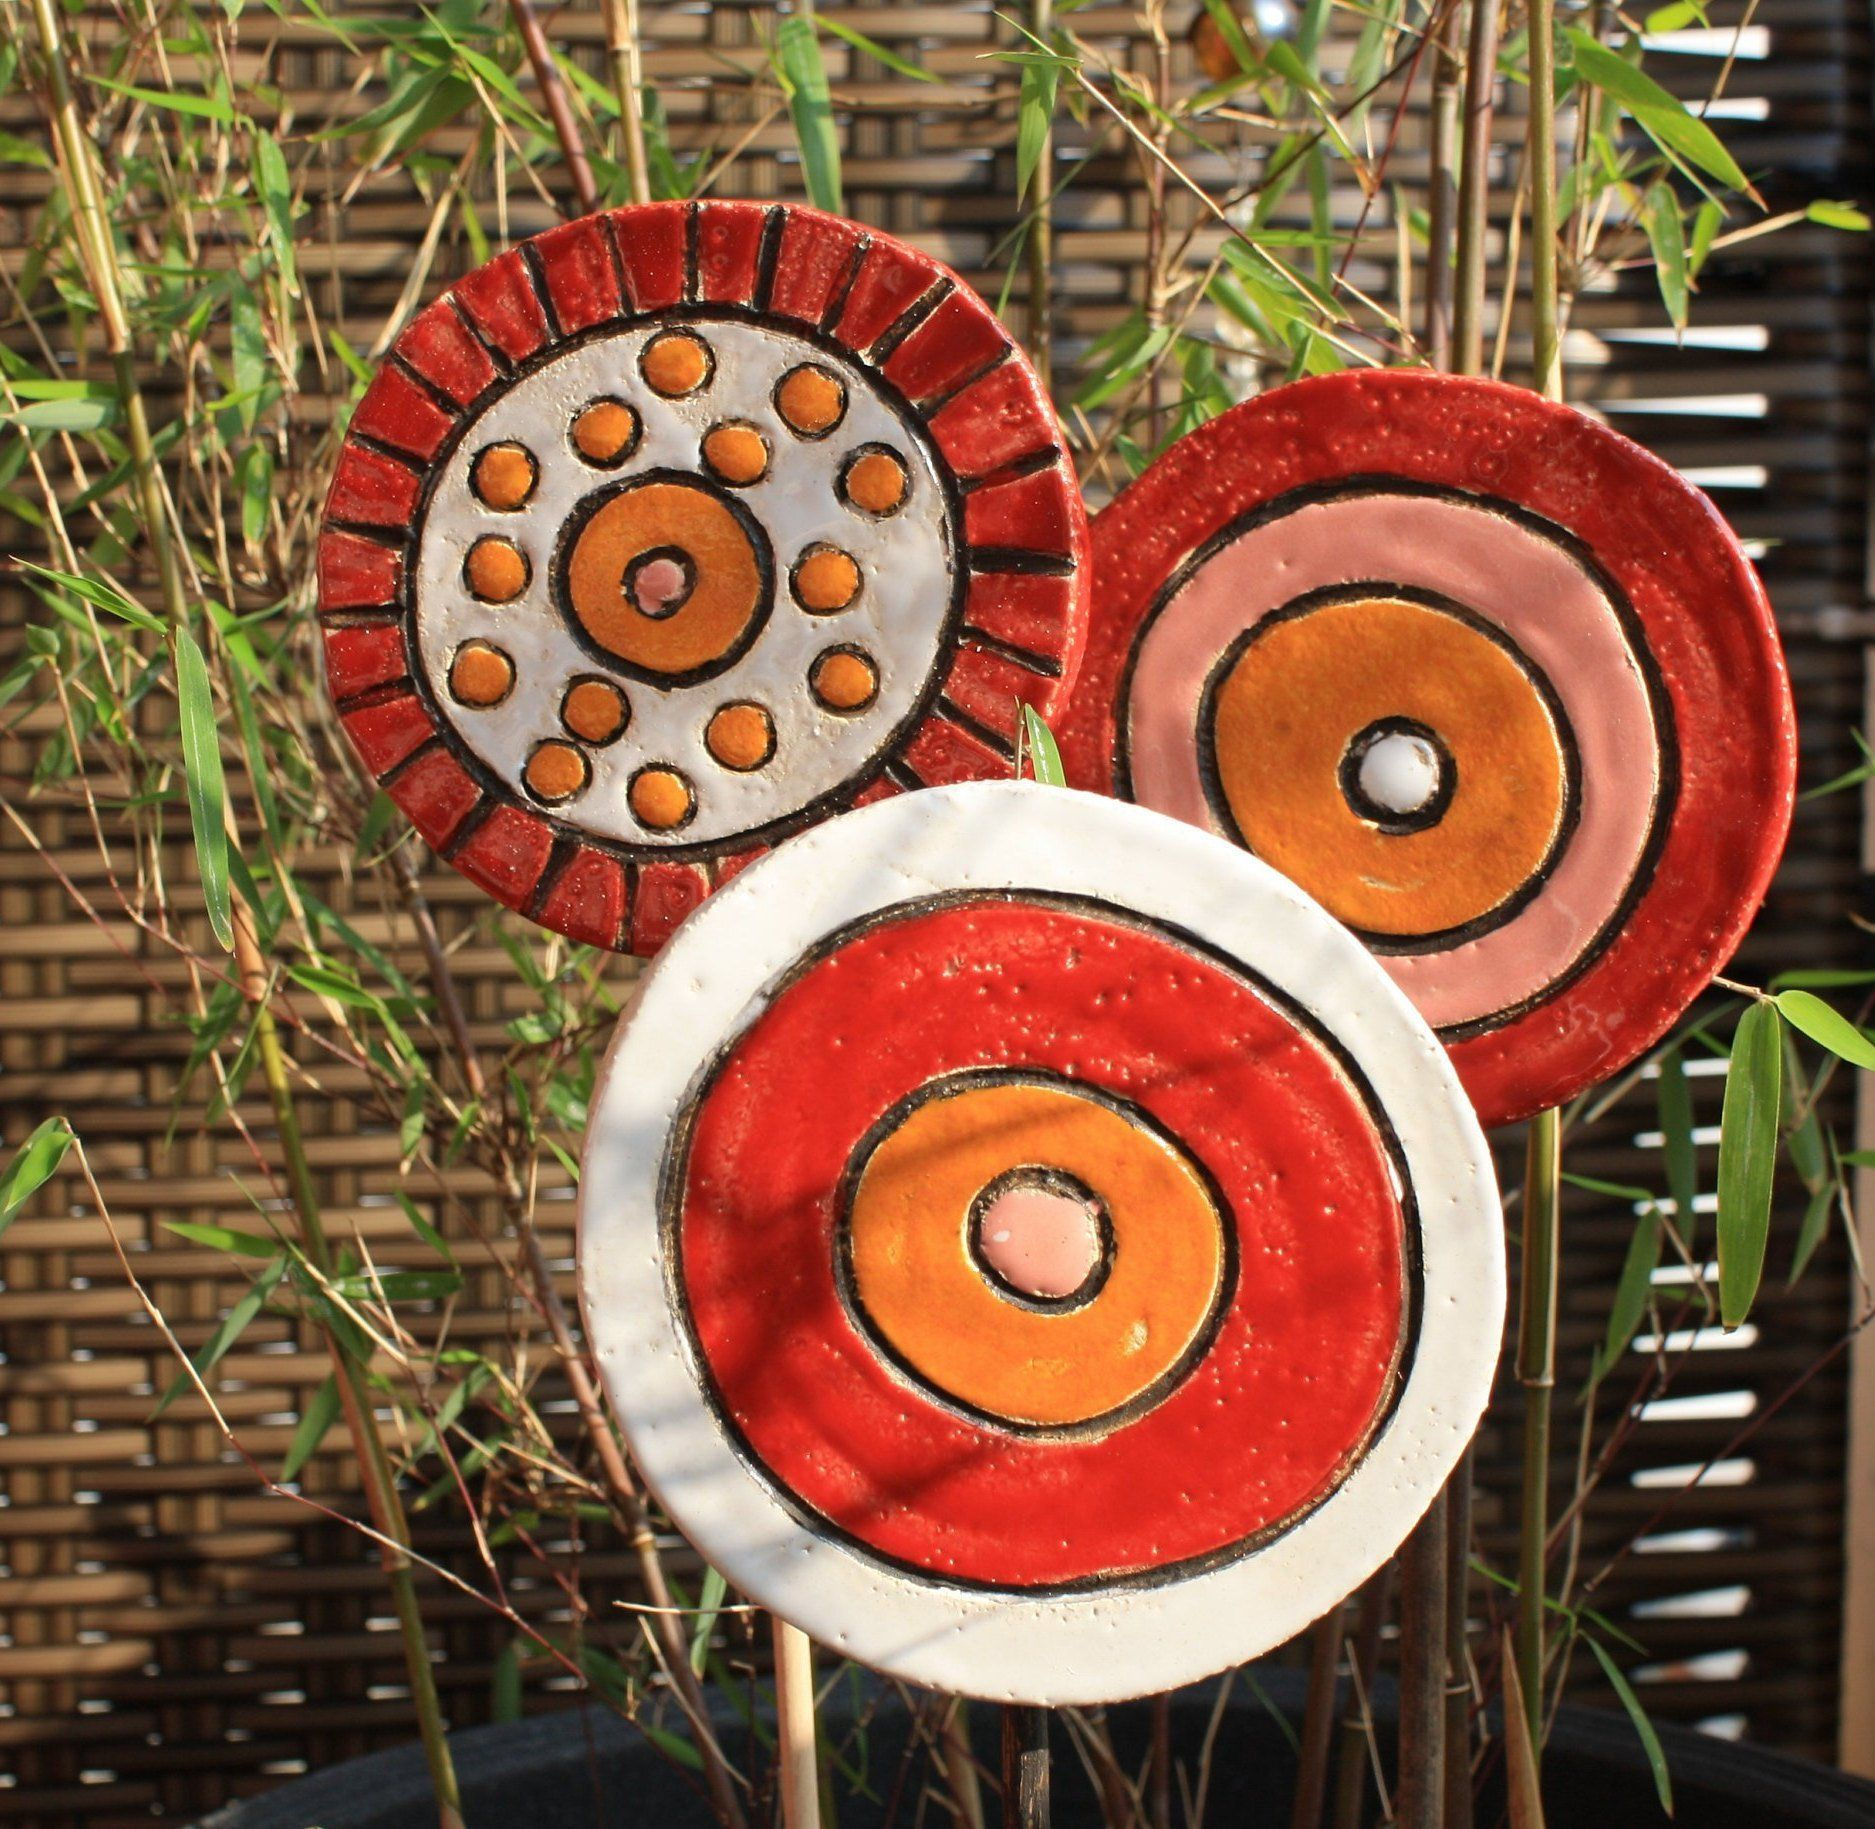 Beetstecker Keramik Gartendeko Gartenkeramik Spirale Rot Ceramics Projects Diy Holder Colorful Ceramics